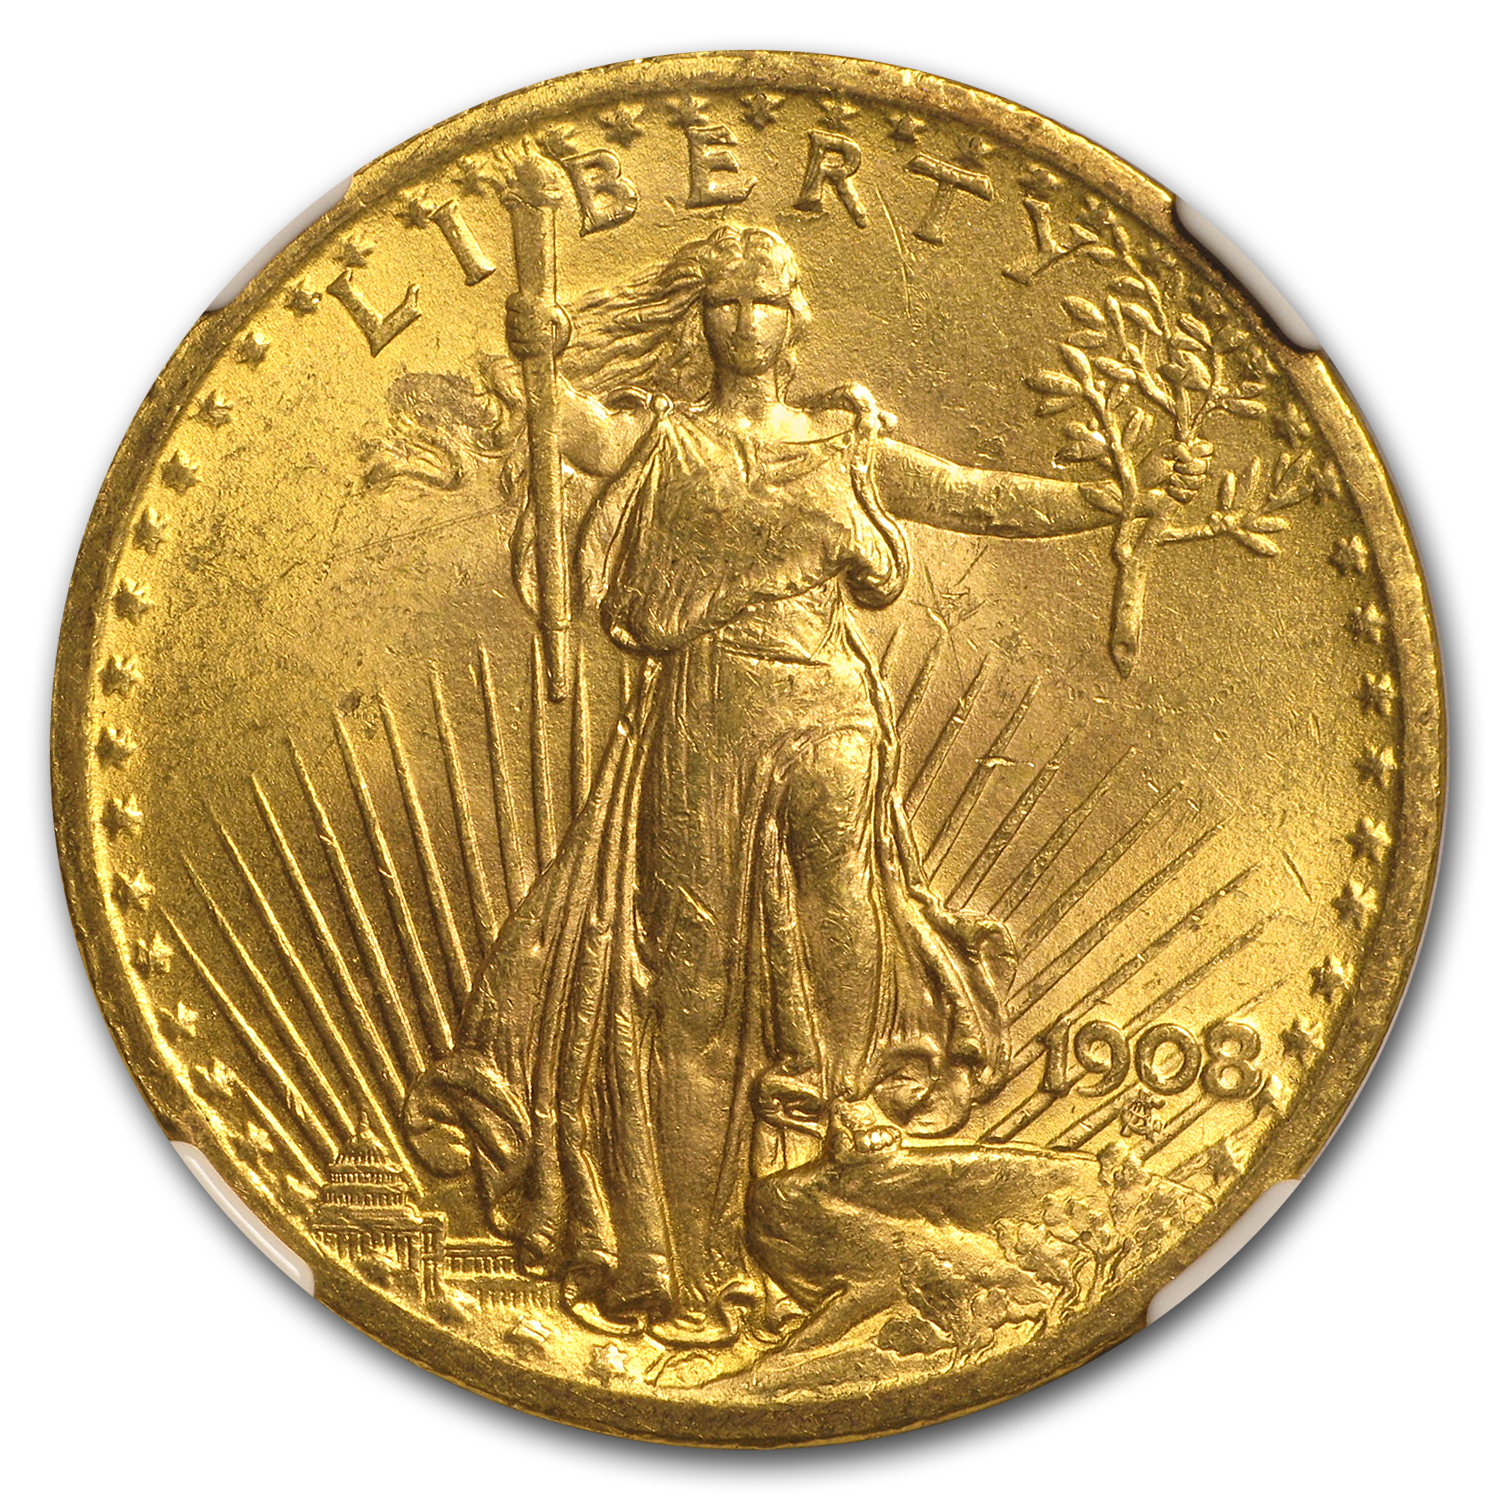 1908 $20 St. Gaudens Gold Double Eagle No Motto MS-62 NGC